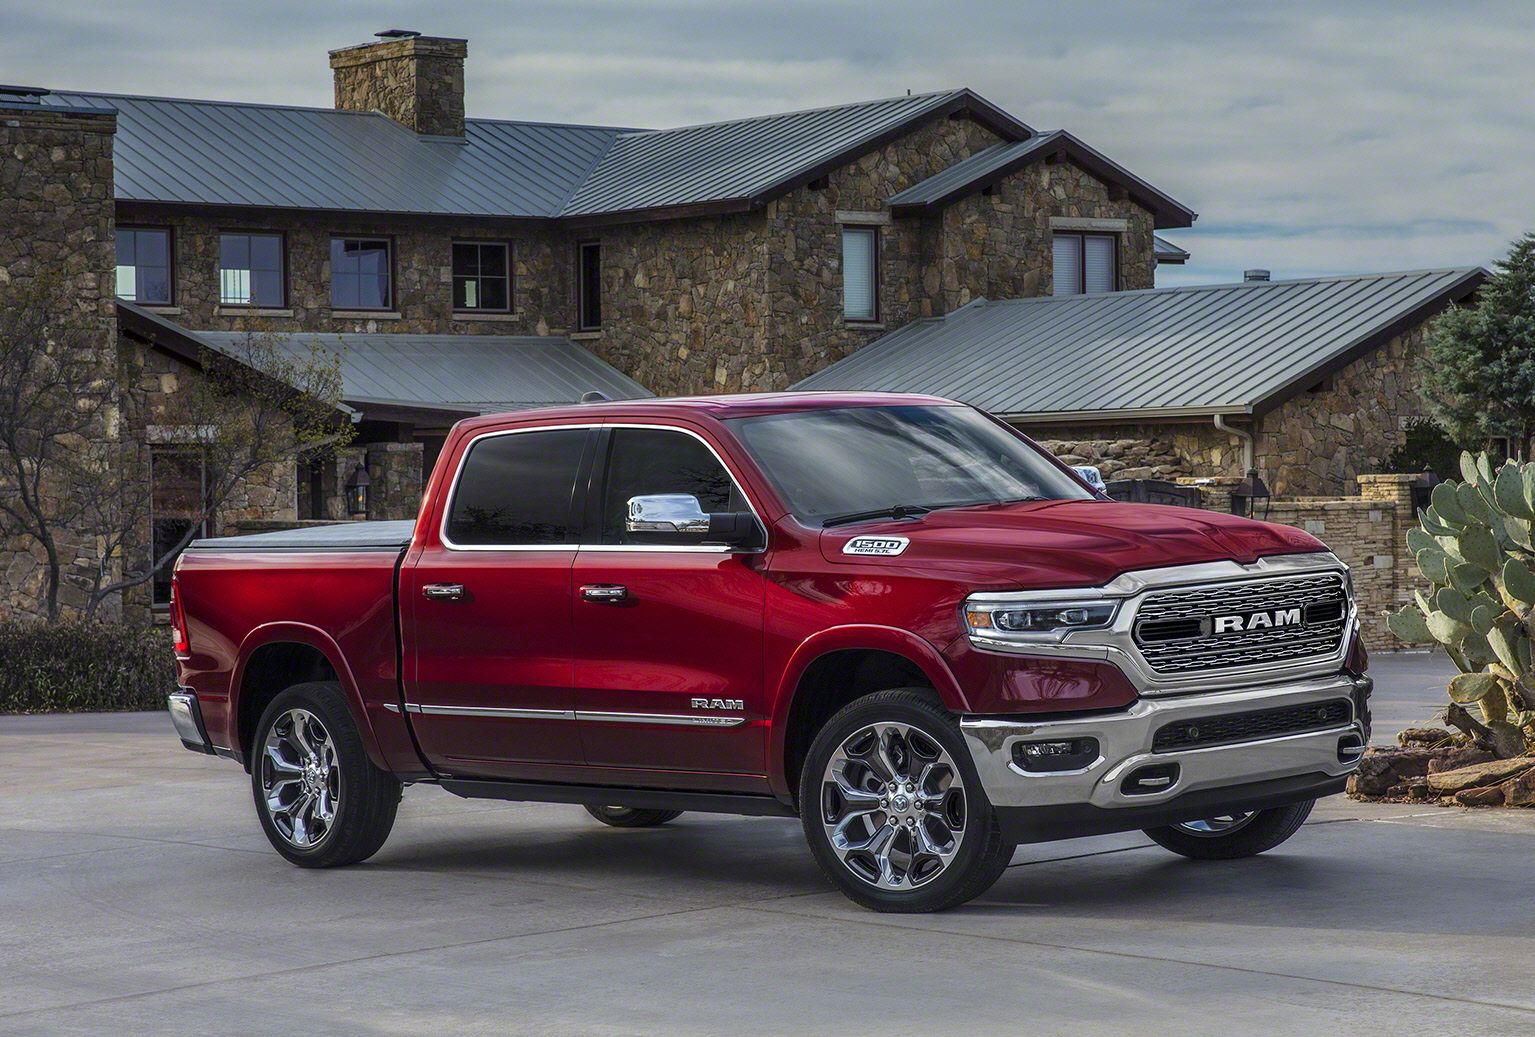 Hot tech christmas gifts 2019 dodge